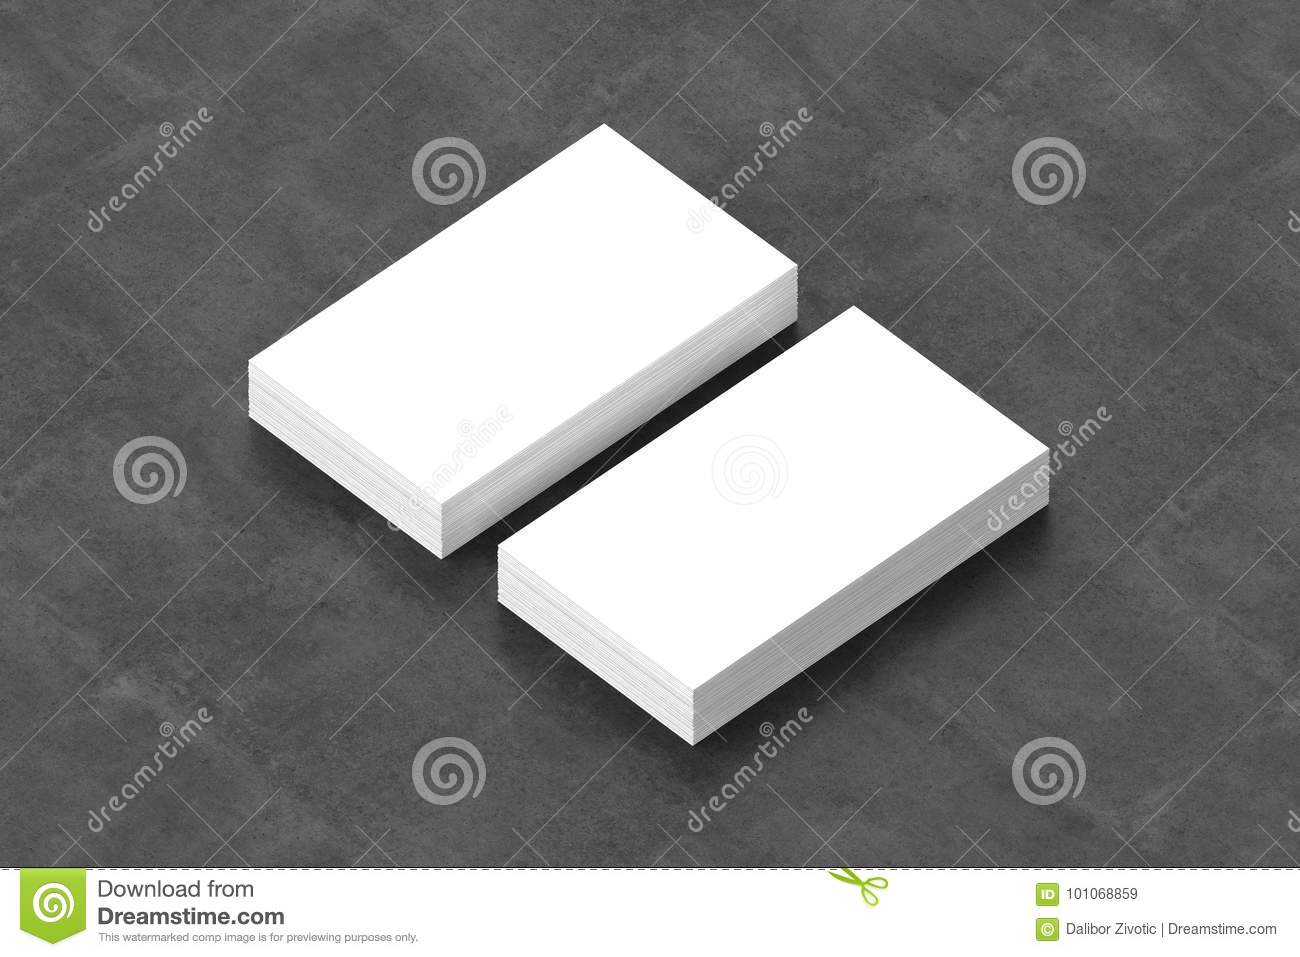 Business cards blank mockup template 3d illustration stock download business cards blank mockup template 3d illustration stock illustration illustration of advertisement colourmoves